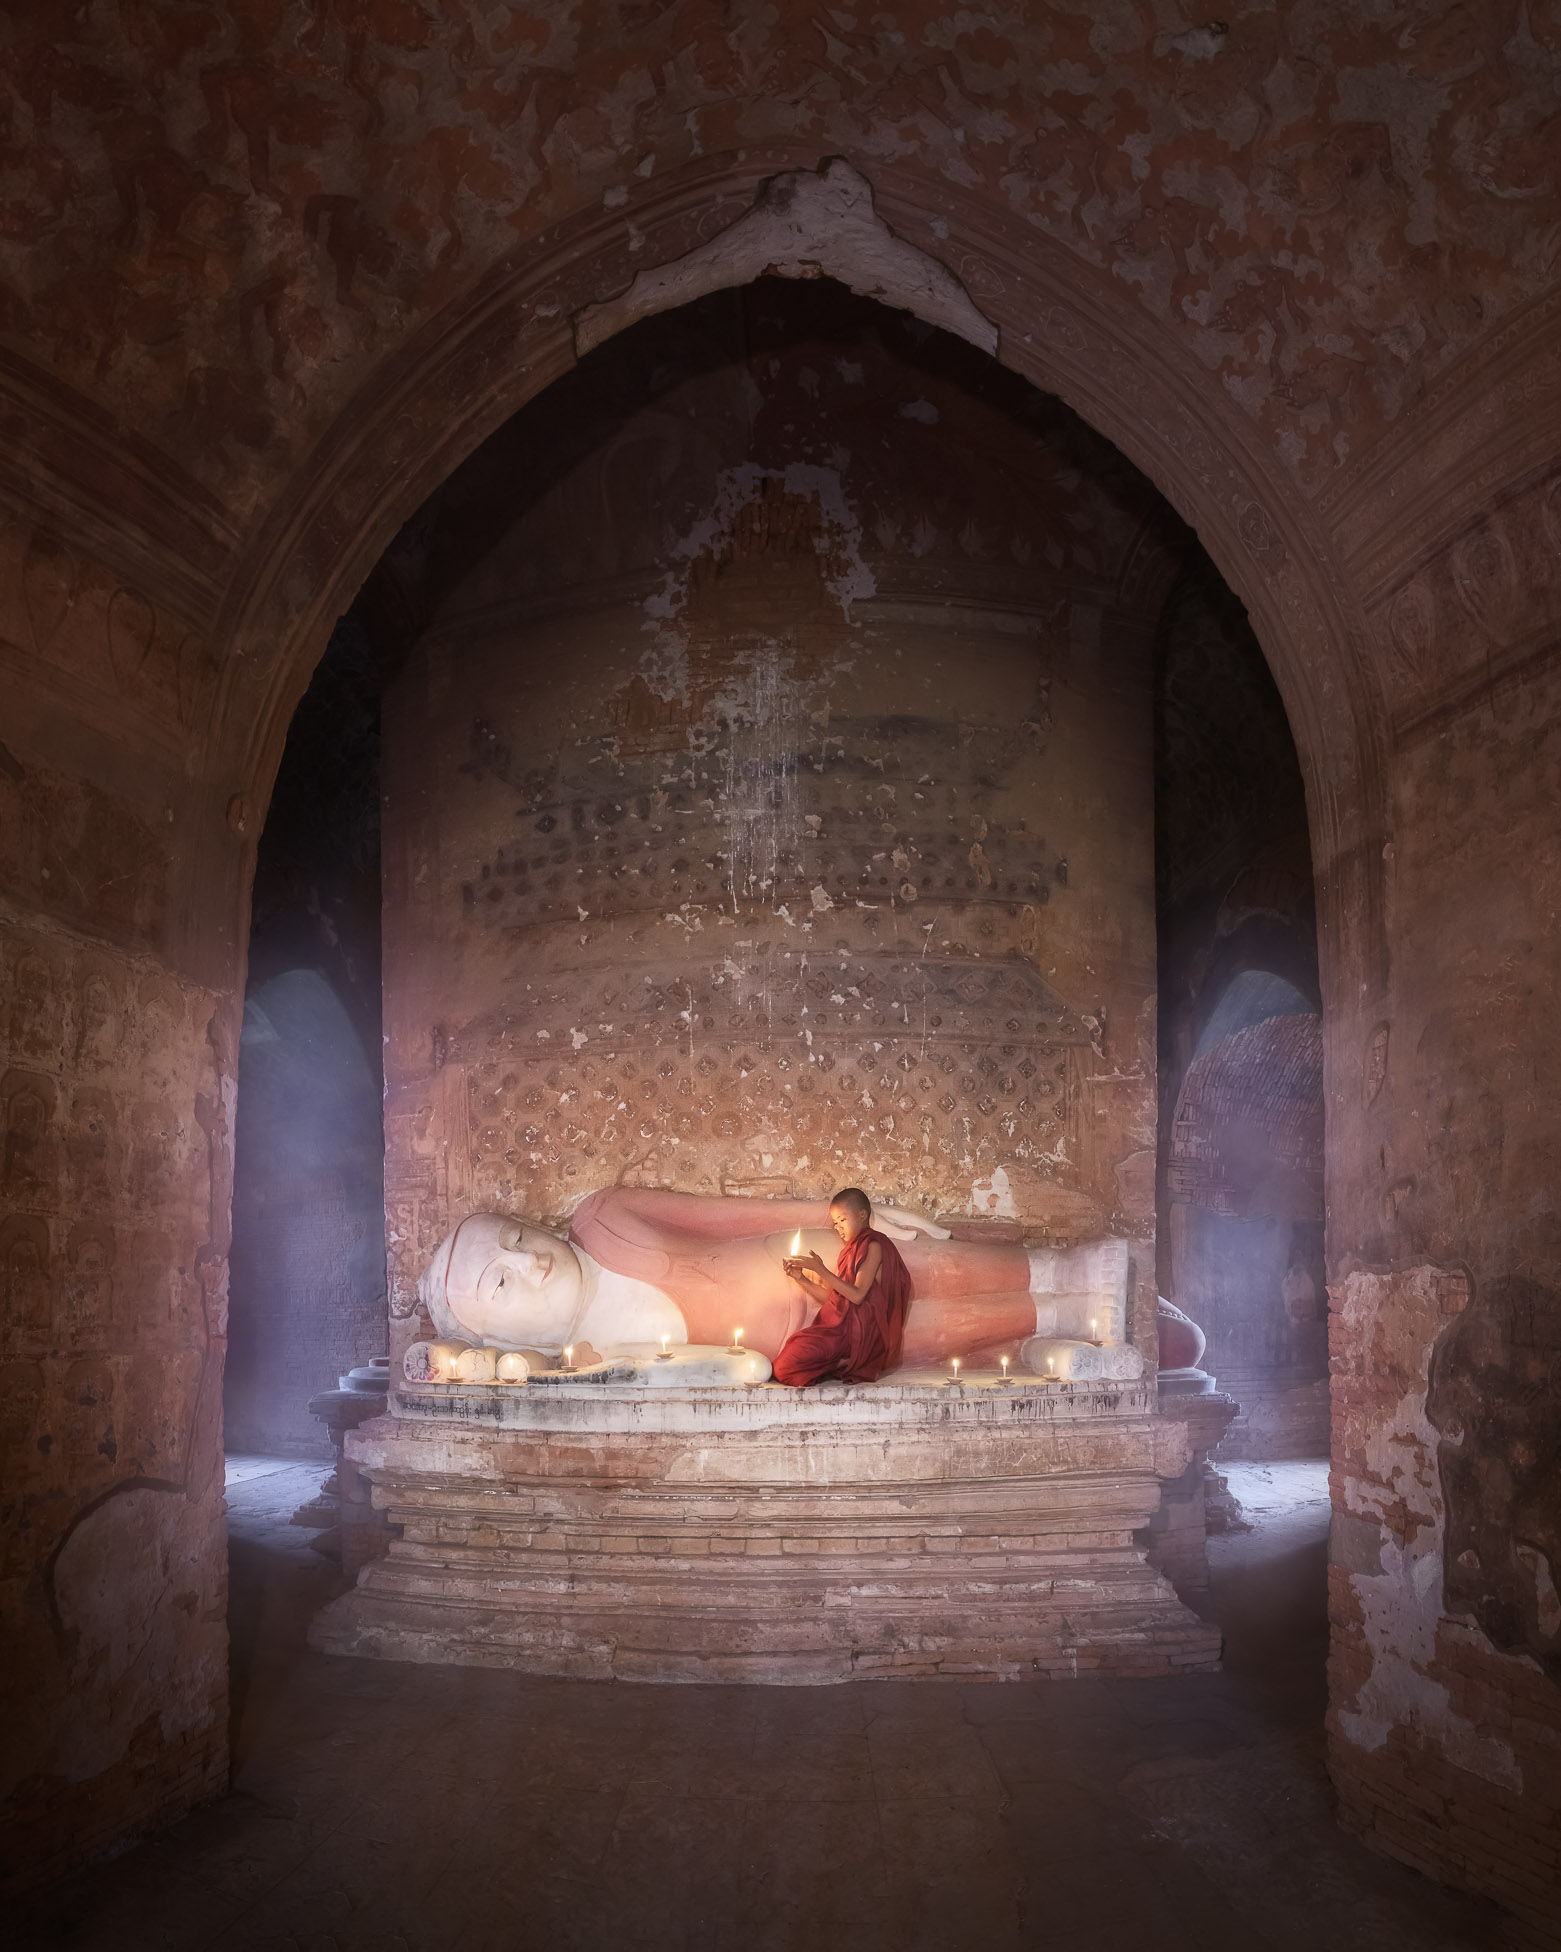 Monk Praying Inside Ancient Temple with the Reclining Buddha, Bagan, Myanmar